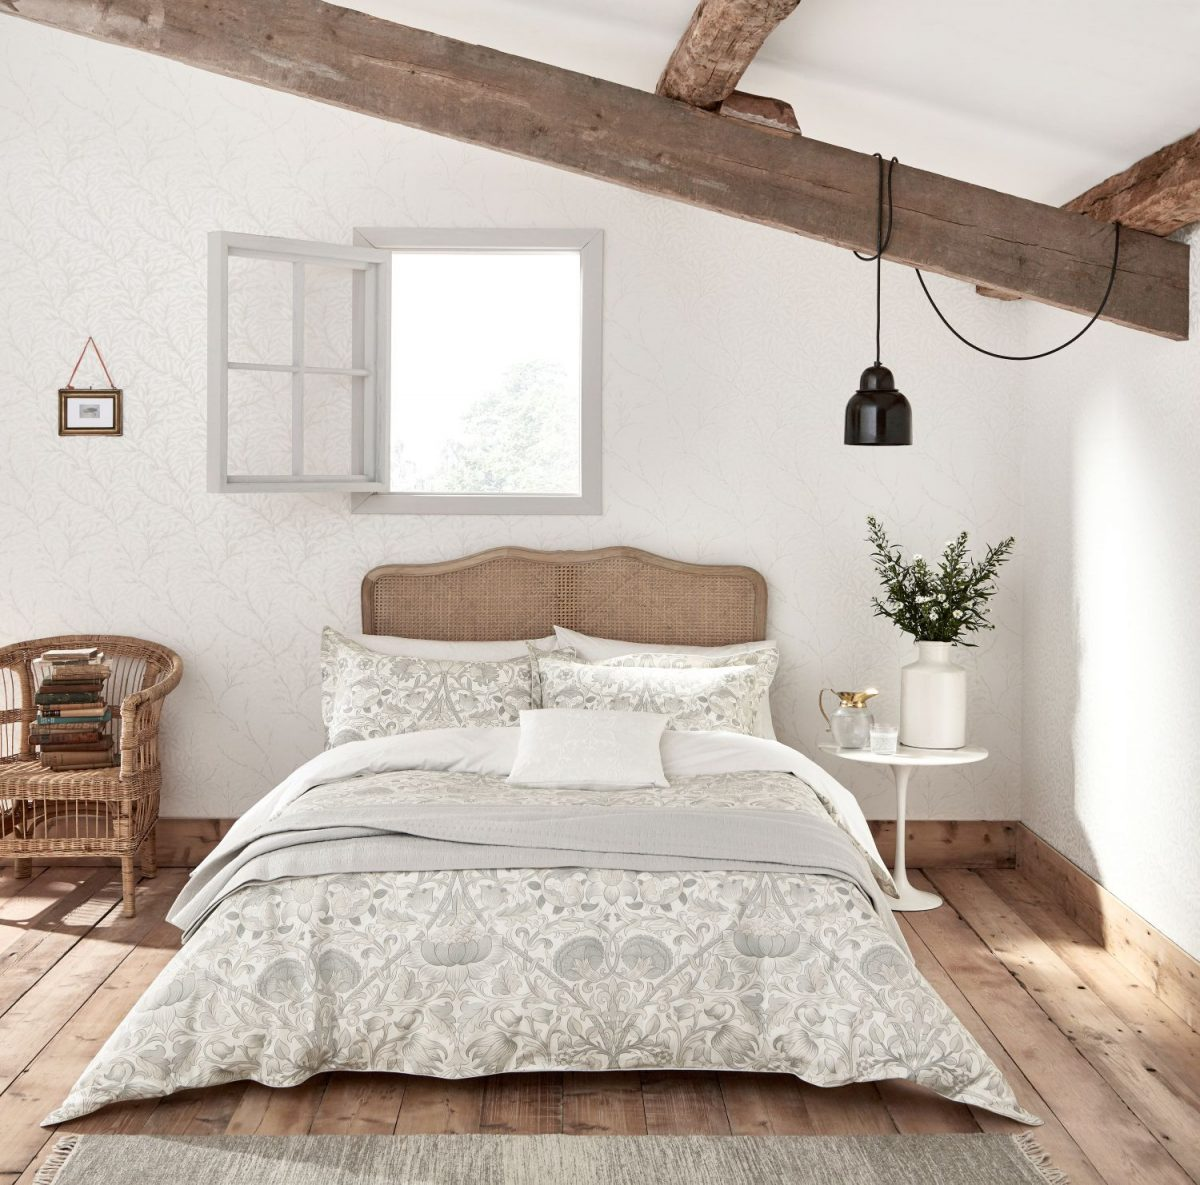 17the-french-bedroom-co_pure-lodden-bed-linen-by-morris-amp-co-lifestyle-1200x1200.jpg